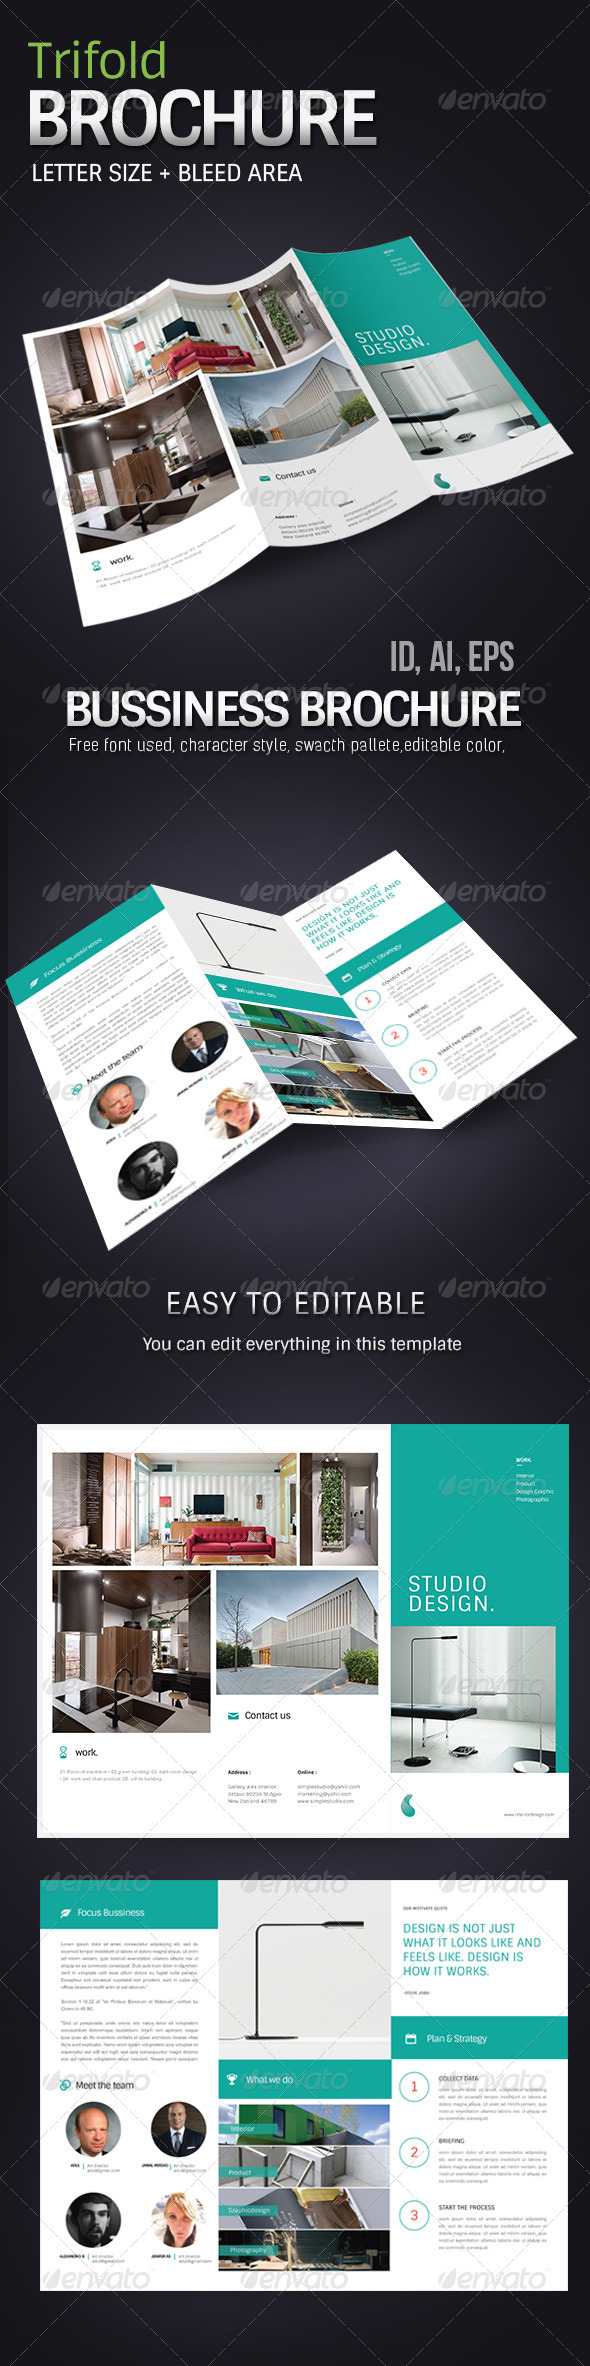 GraphicRiver Simple Corporate Business Brochure 7796847